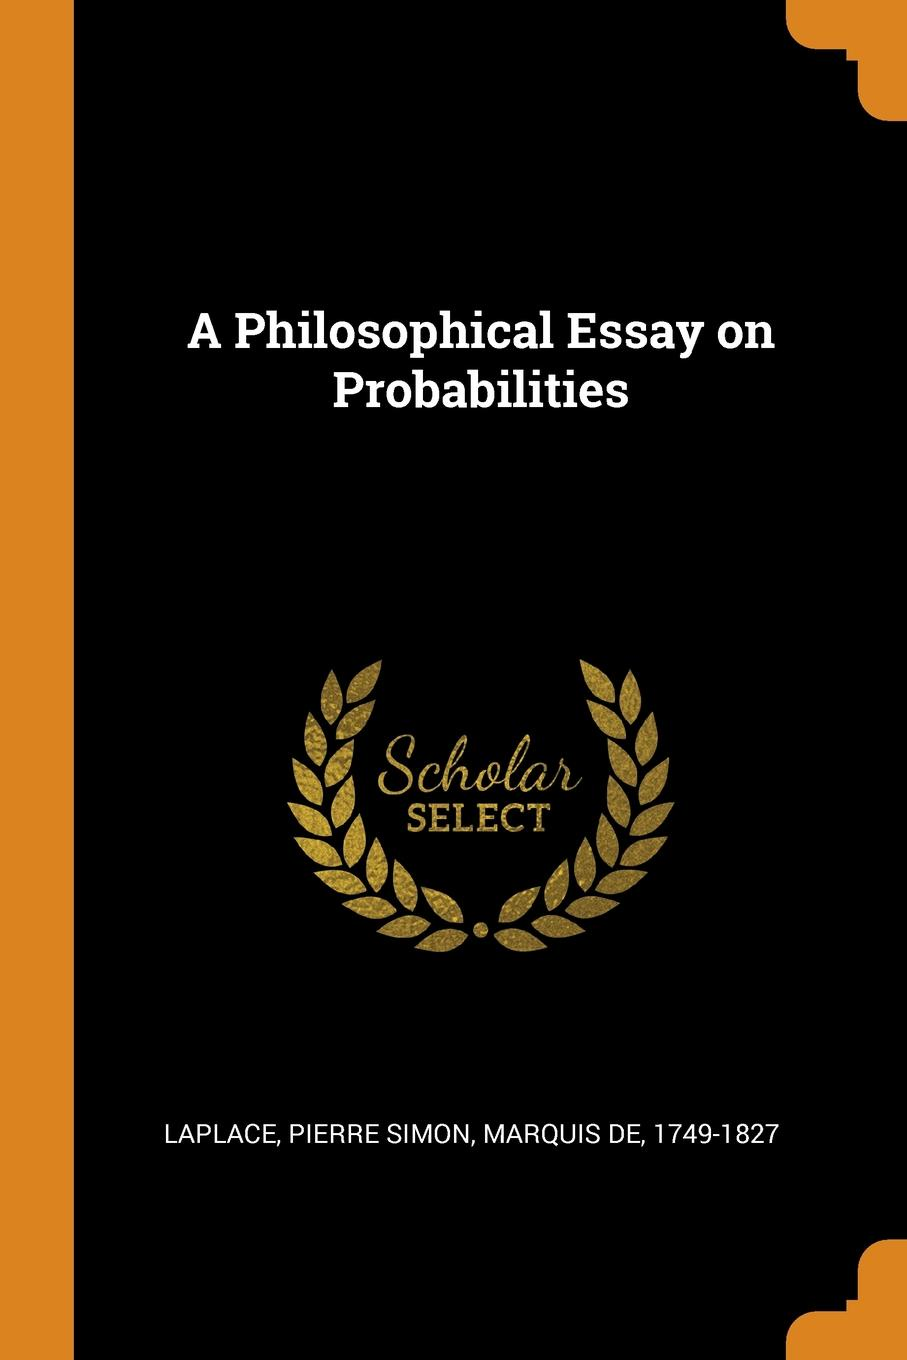 A Philosophical Essay on Probabilities gabriel moran america in the united states and the united states in america a philosophical essay